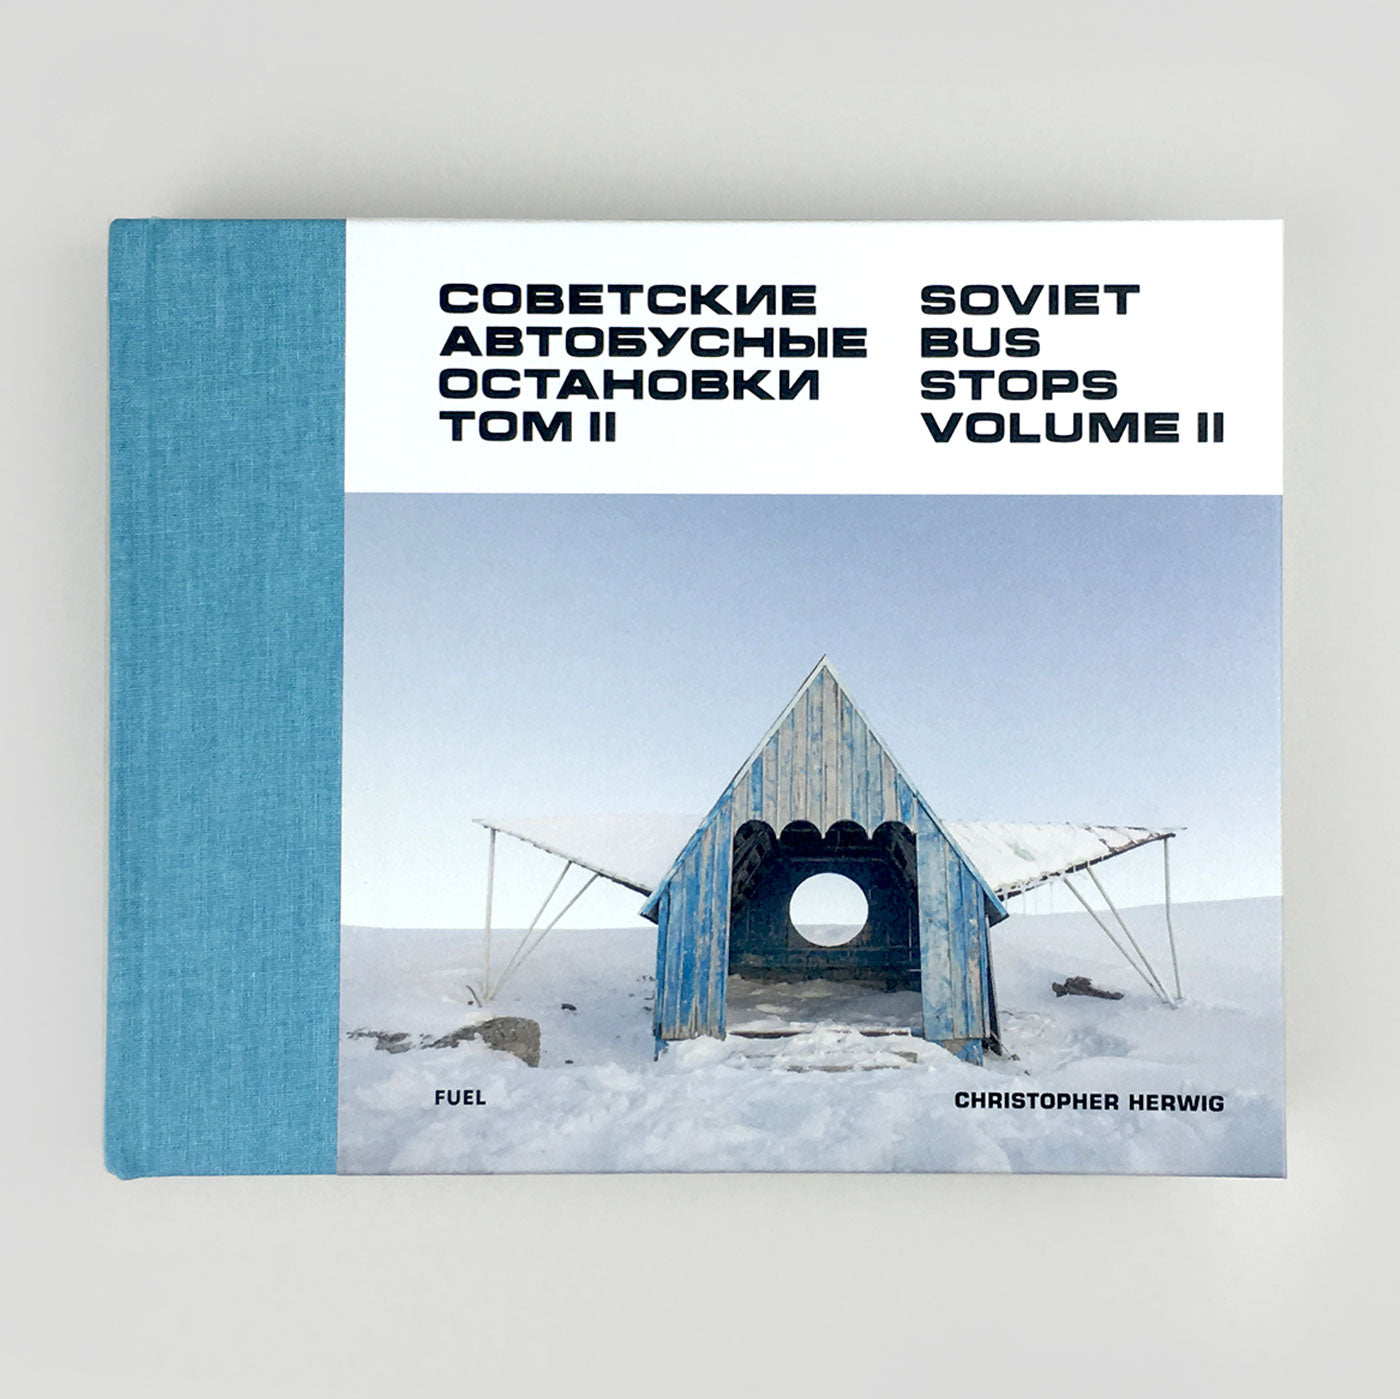 SOVIET BUS STOPS VOLUME II BY CHRISTOPHER HERWIG